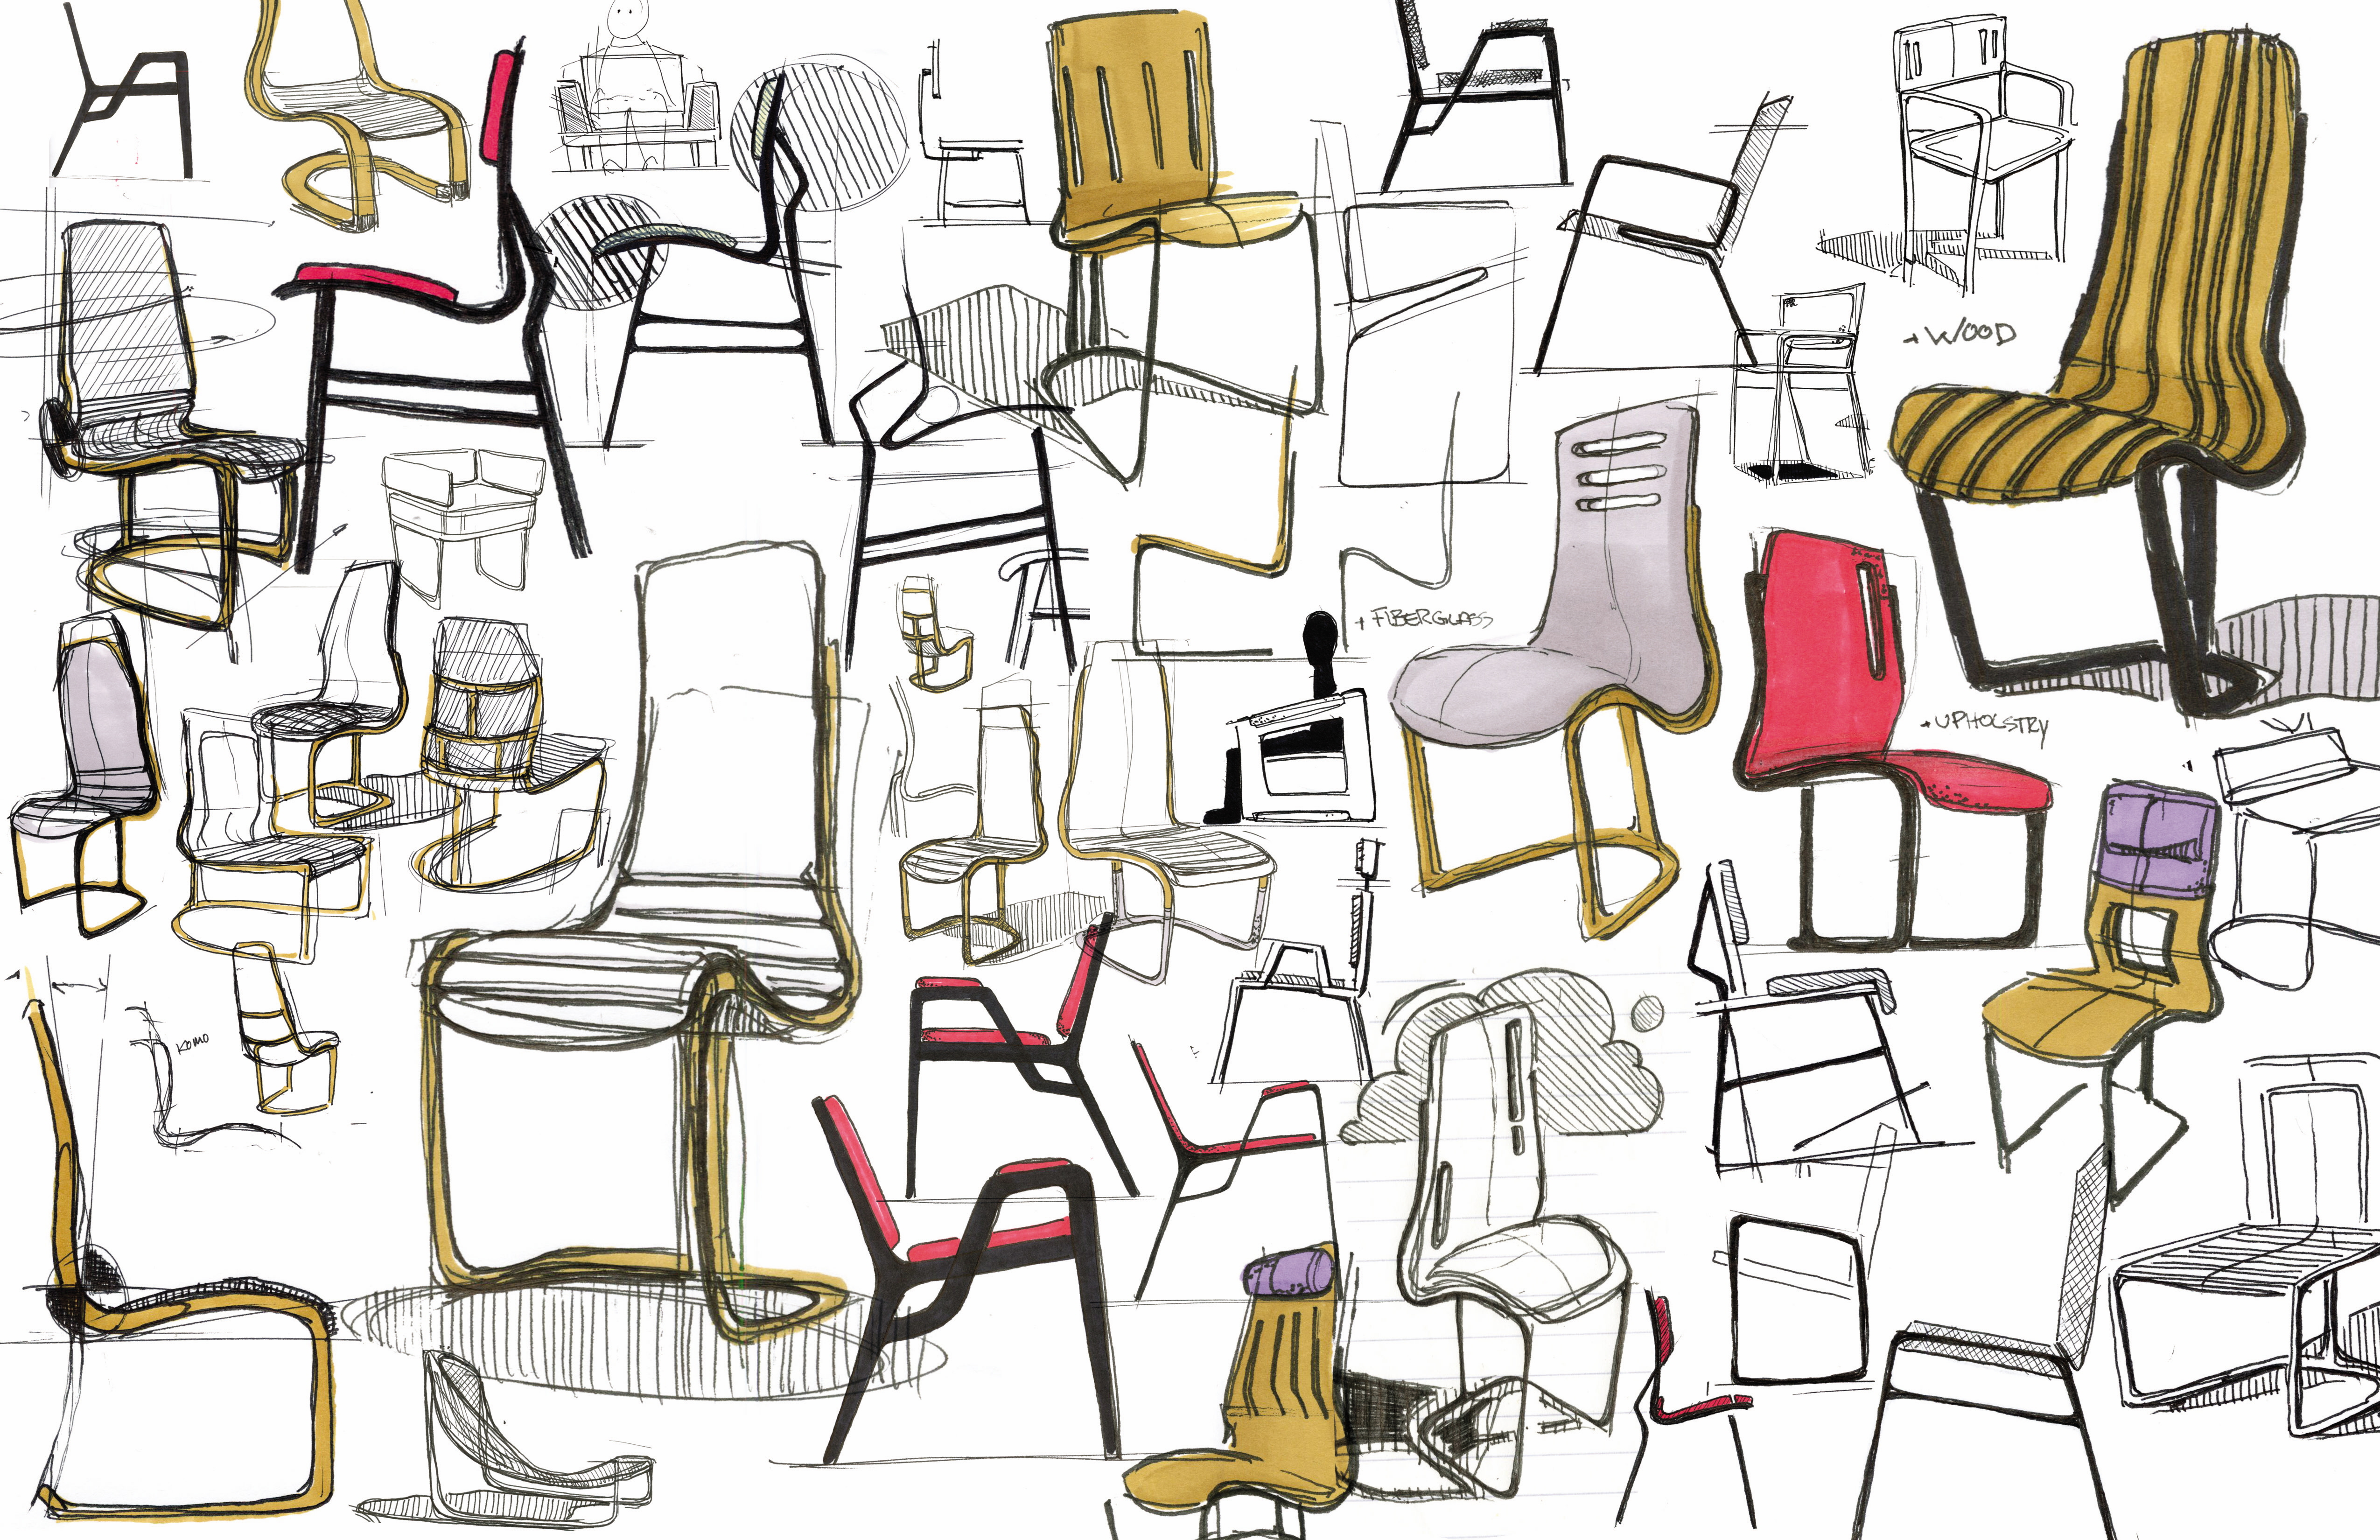 Sketches and other works by chet larrow at for Furniture sketch design